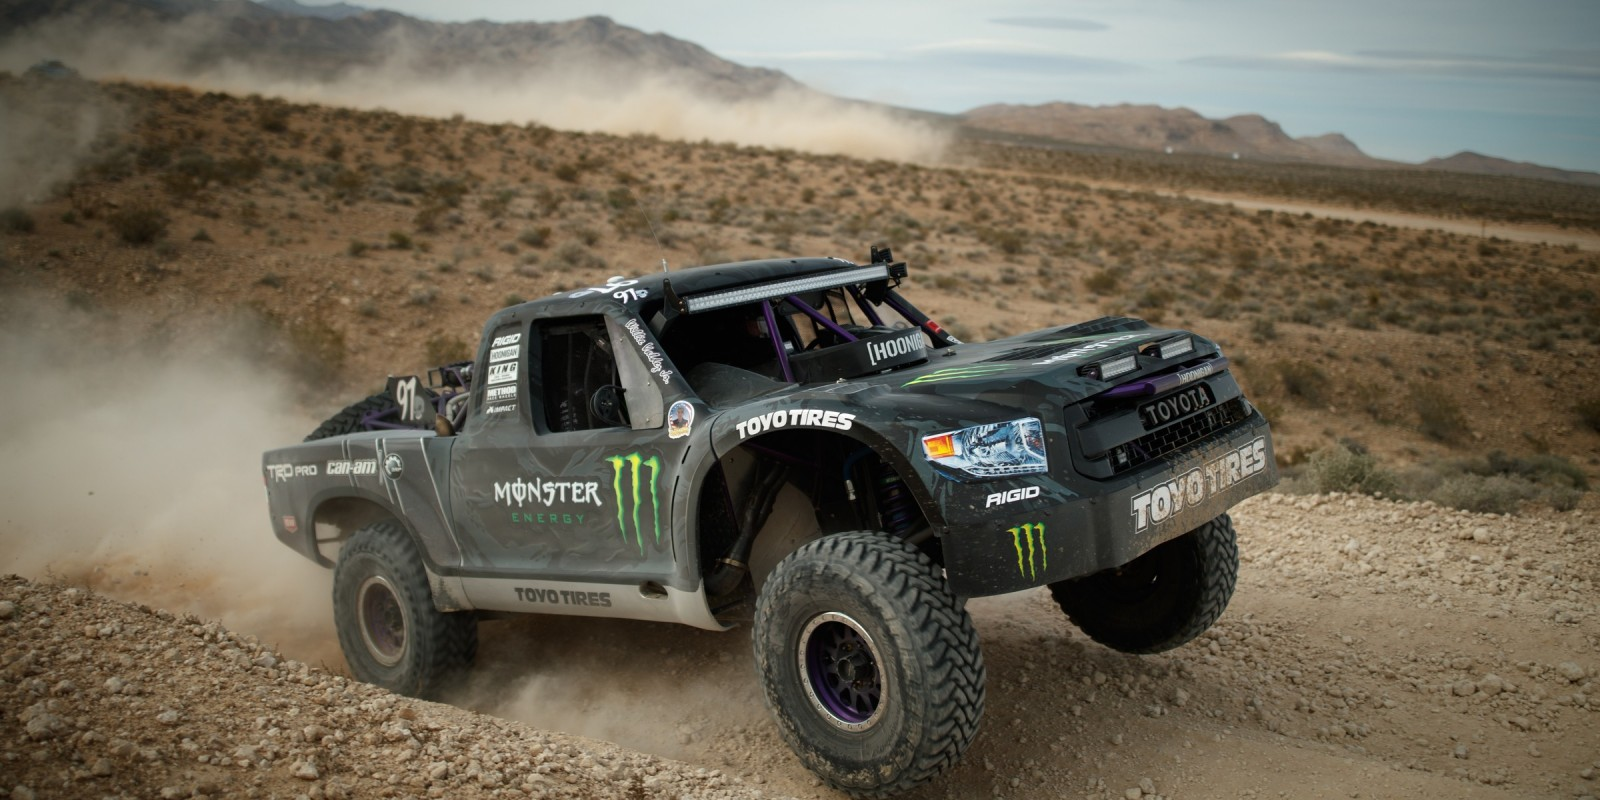 Monster Riders at the 2017 Mint 400 in Las Vegas